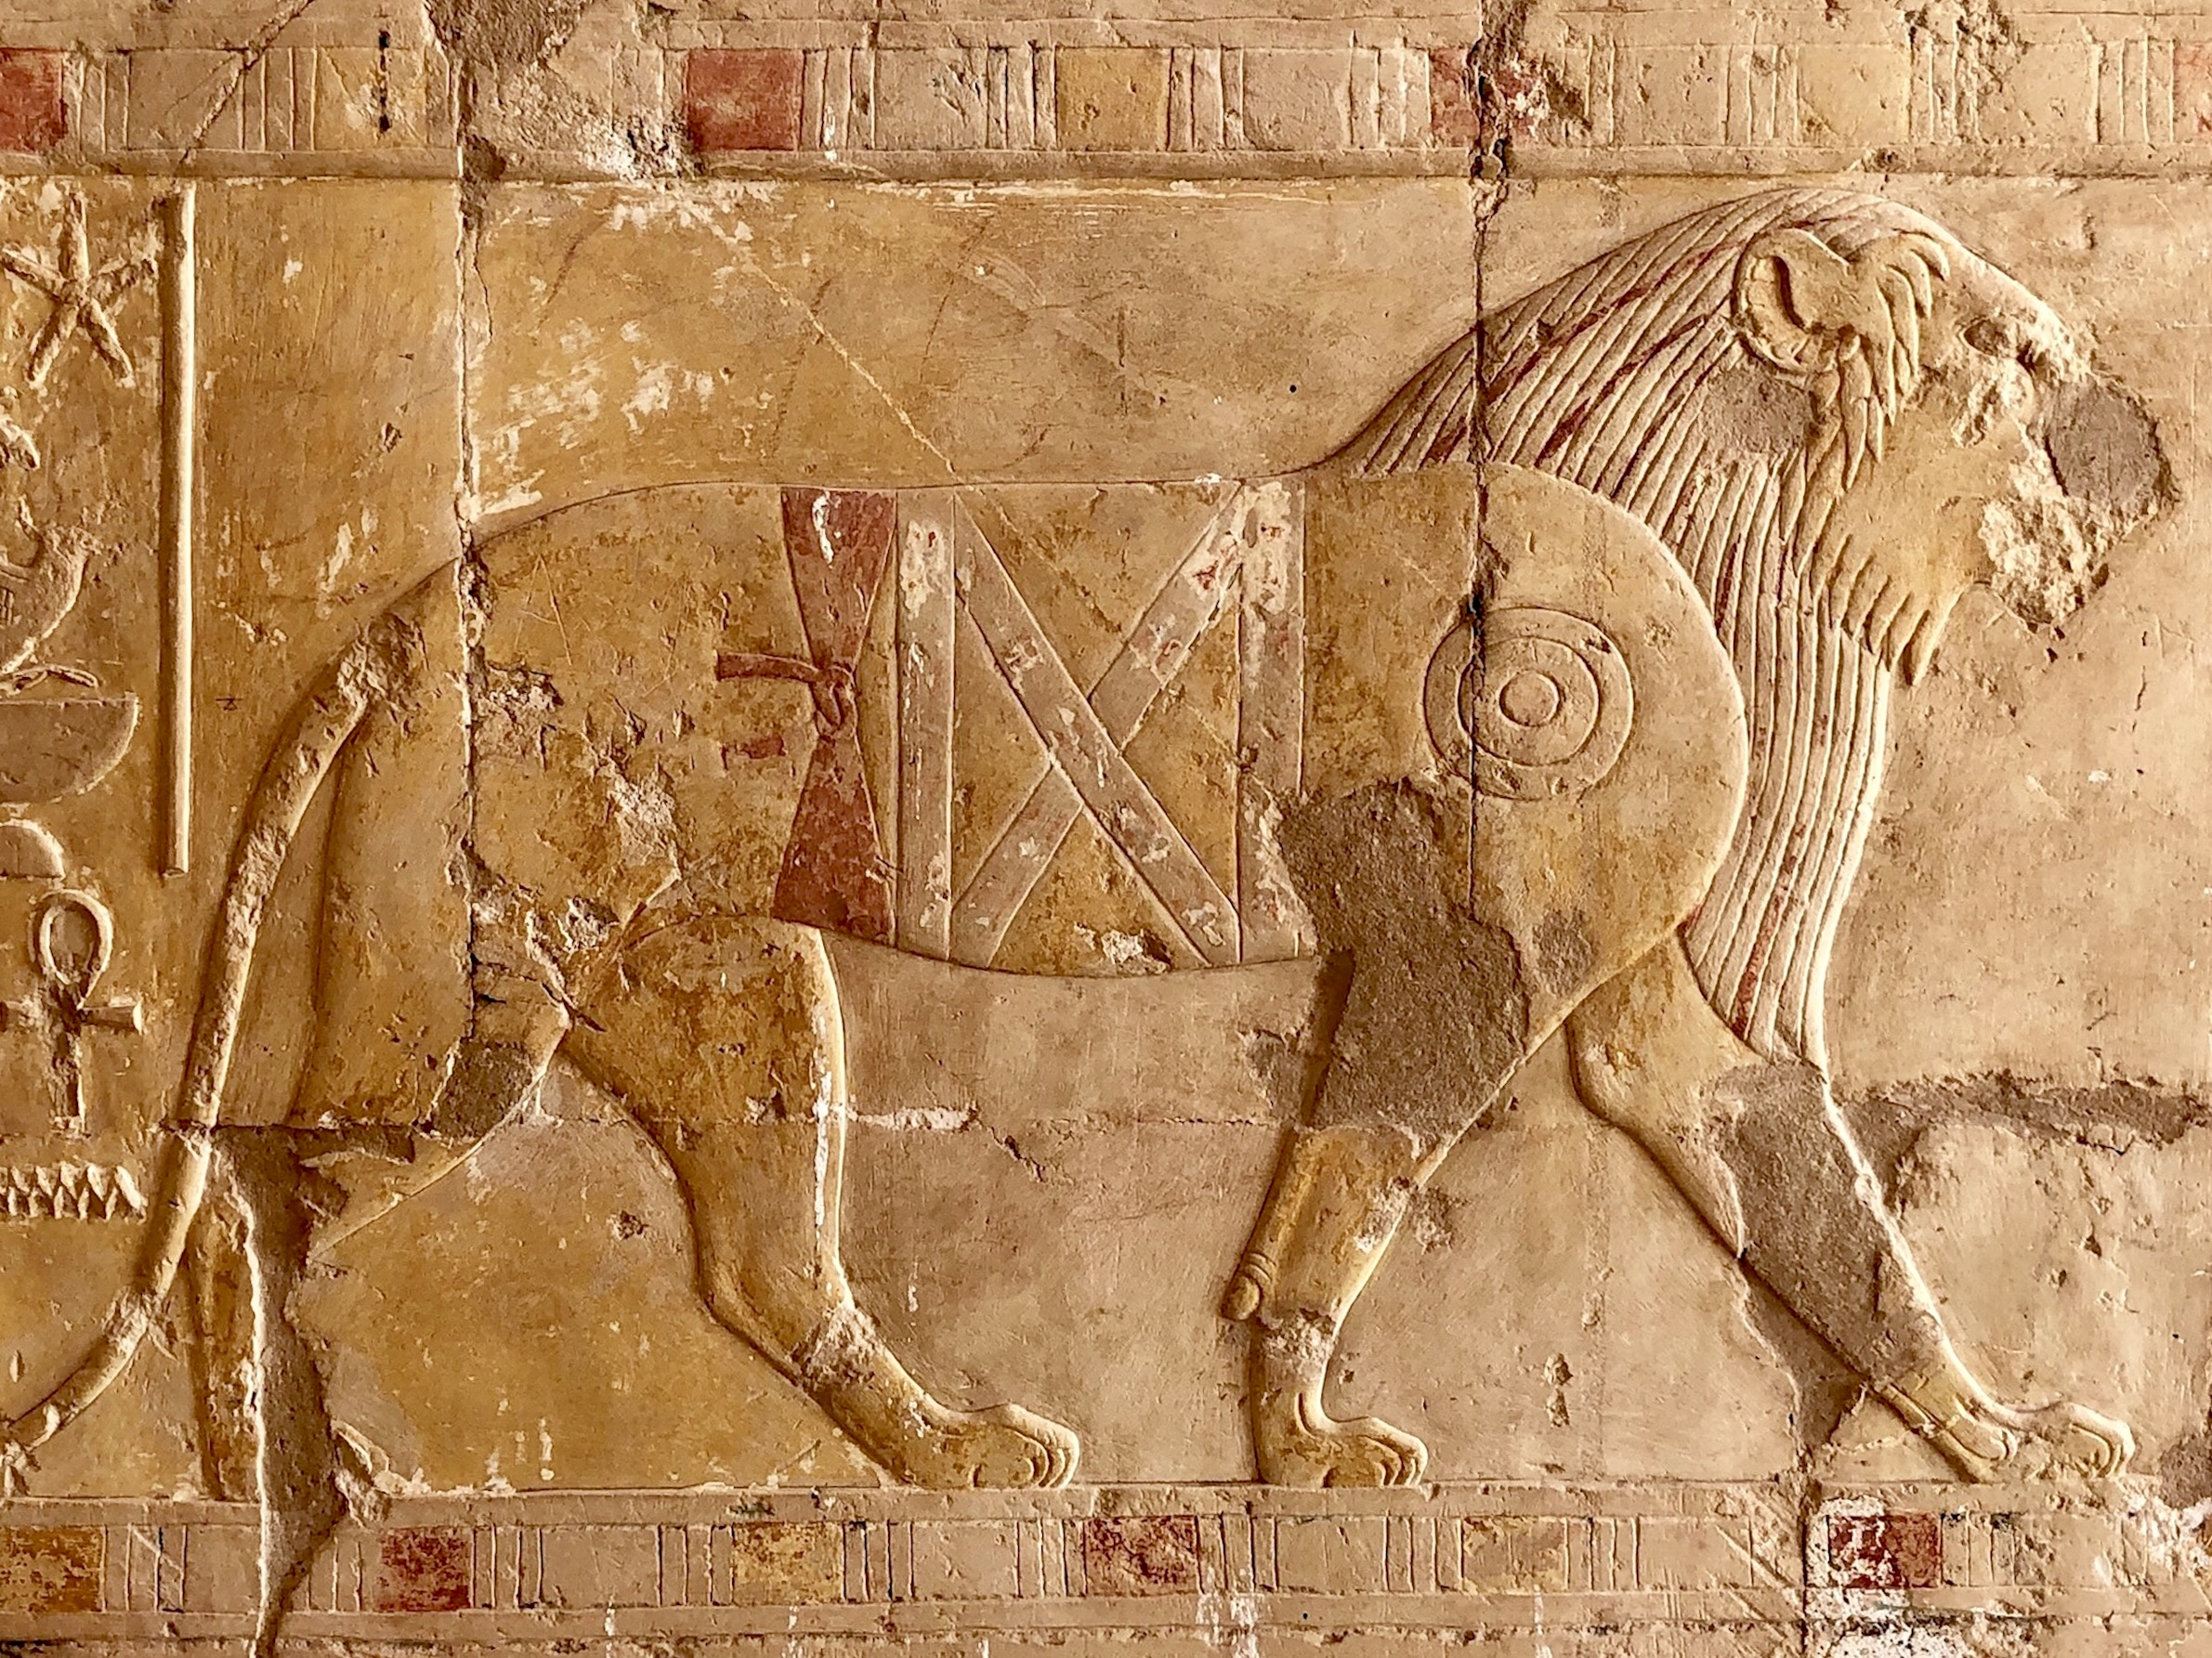 A beautiful carving of a lion, one of the exotic animals from the expedition to the mysterious land of Punt — no one is quite sure where exactly it was